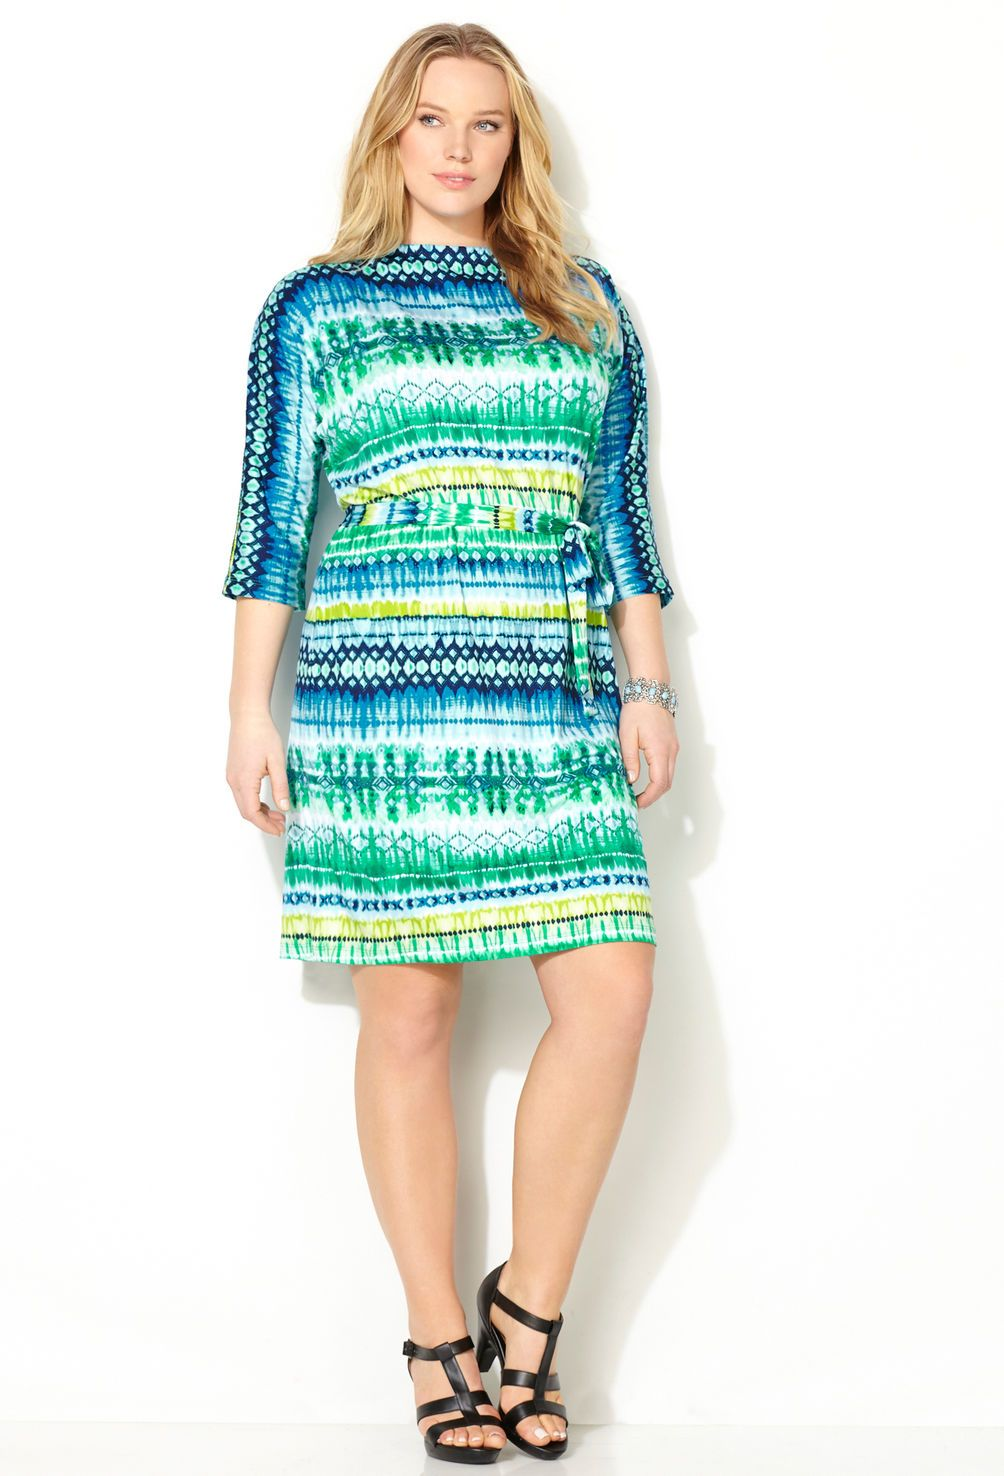 7556c8b9500 Blue Tie Dye Striped Dress-Plus Size Dress-Avenue